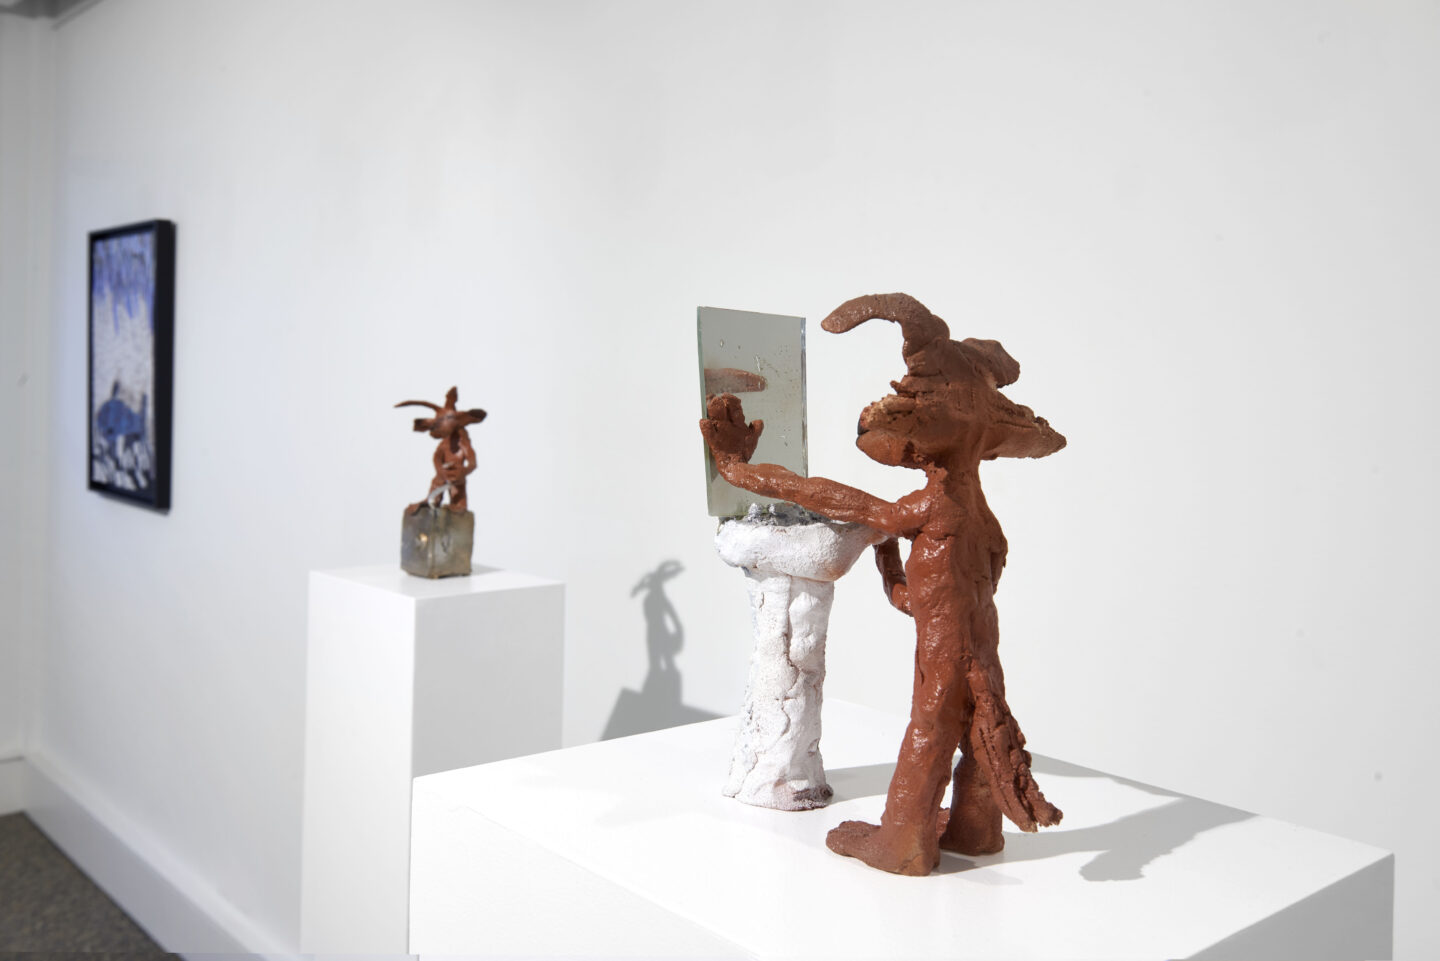 Exhibition View Groupshow «Supper Club; view on Cassidy Toner, Wile E. Coyote contemplates his existence, 2018 and Cassidy Toner, Wile E. Coyote desperately tries to open the vault to his inner happiness, 2019» at Wilde, Basel, 2020 / Photo: Philipp Hänger / Courtesy: the artist and Wilde